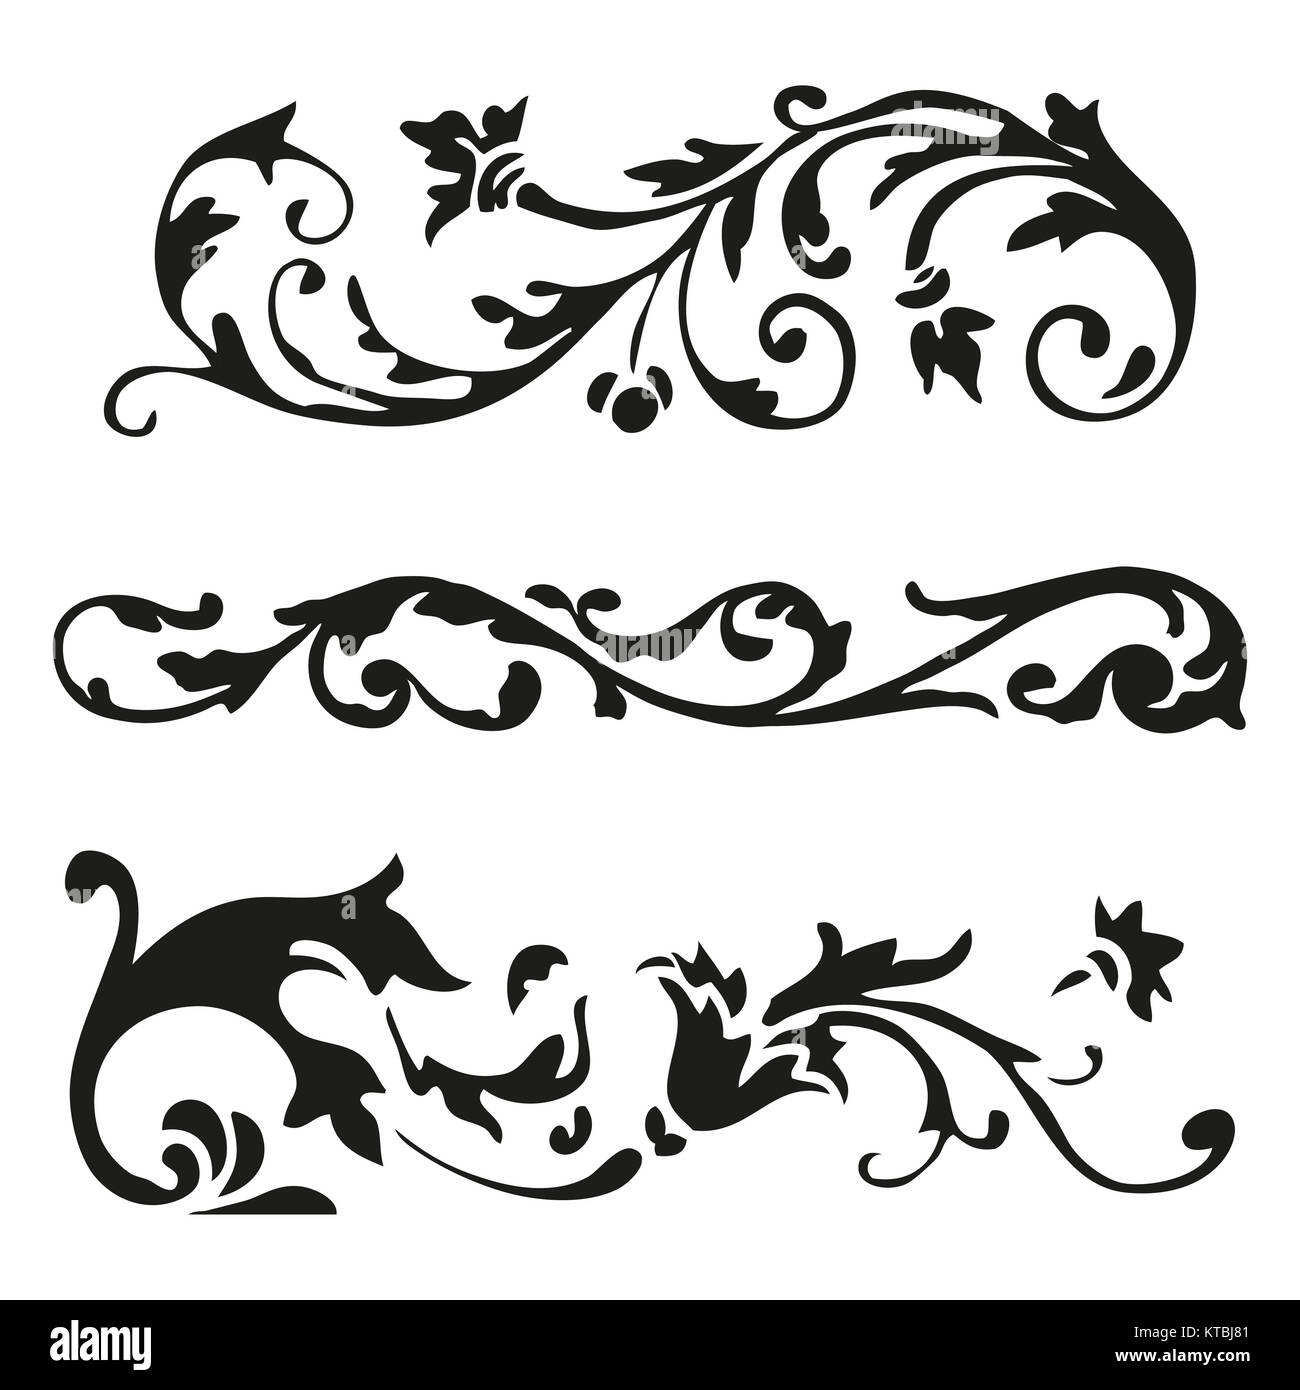 Vector Illustration Set Of Curled Flourishes Decorative Floral Stock